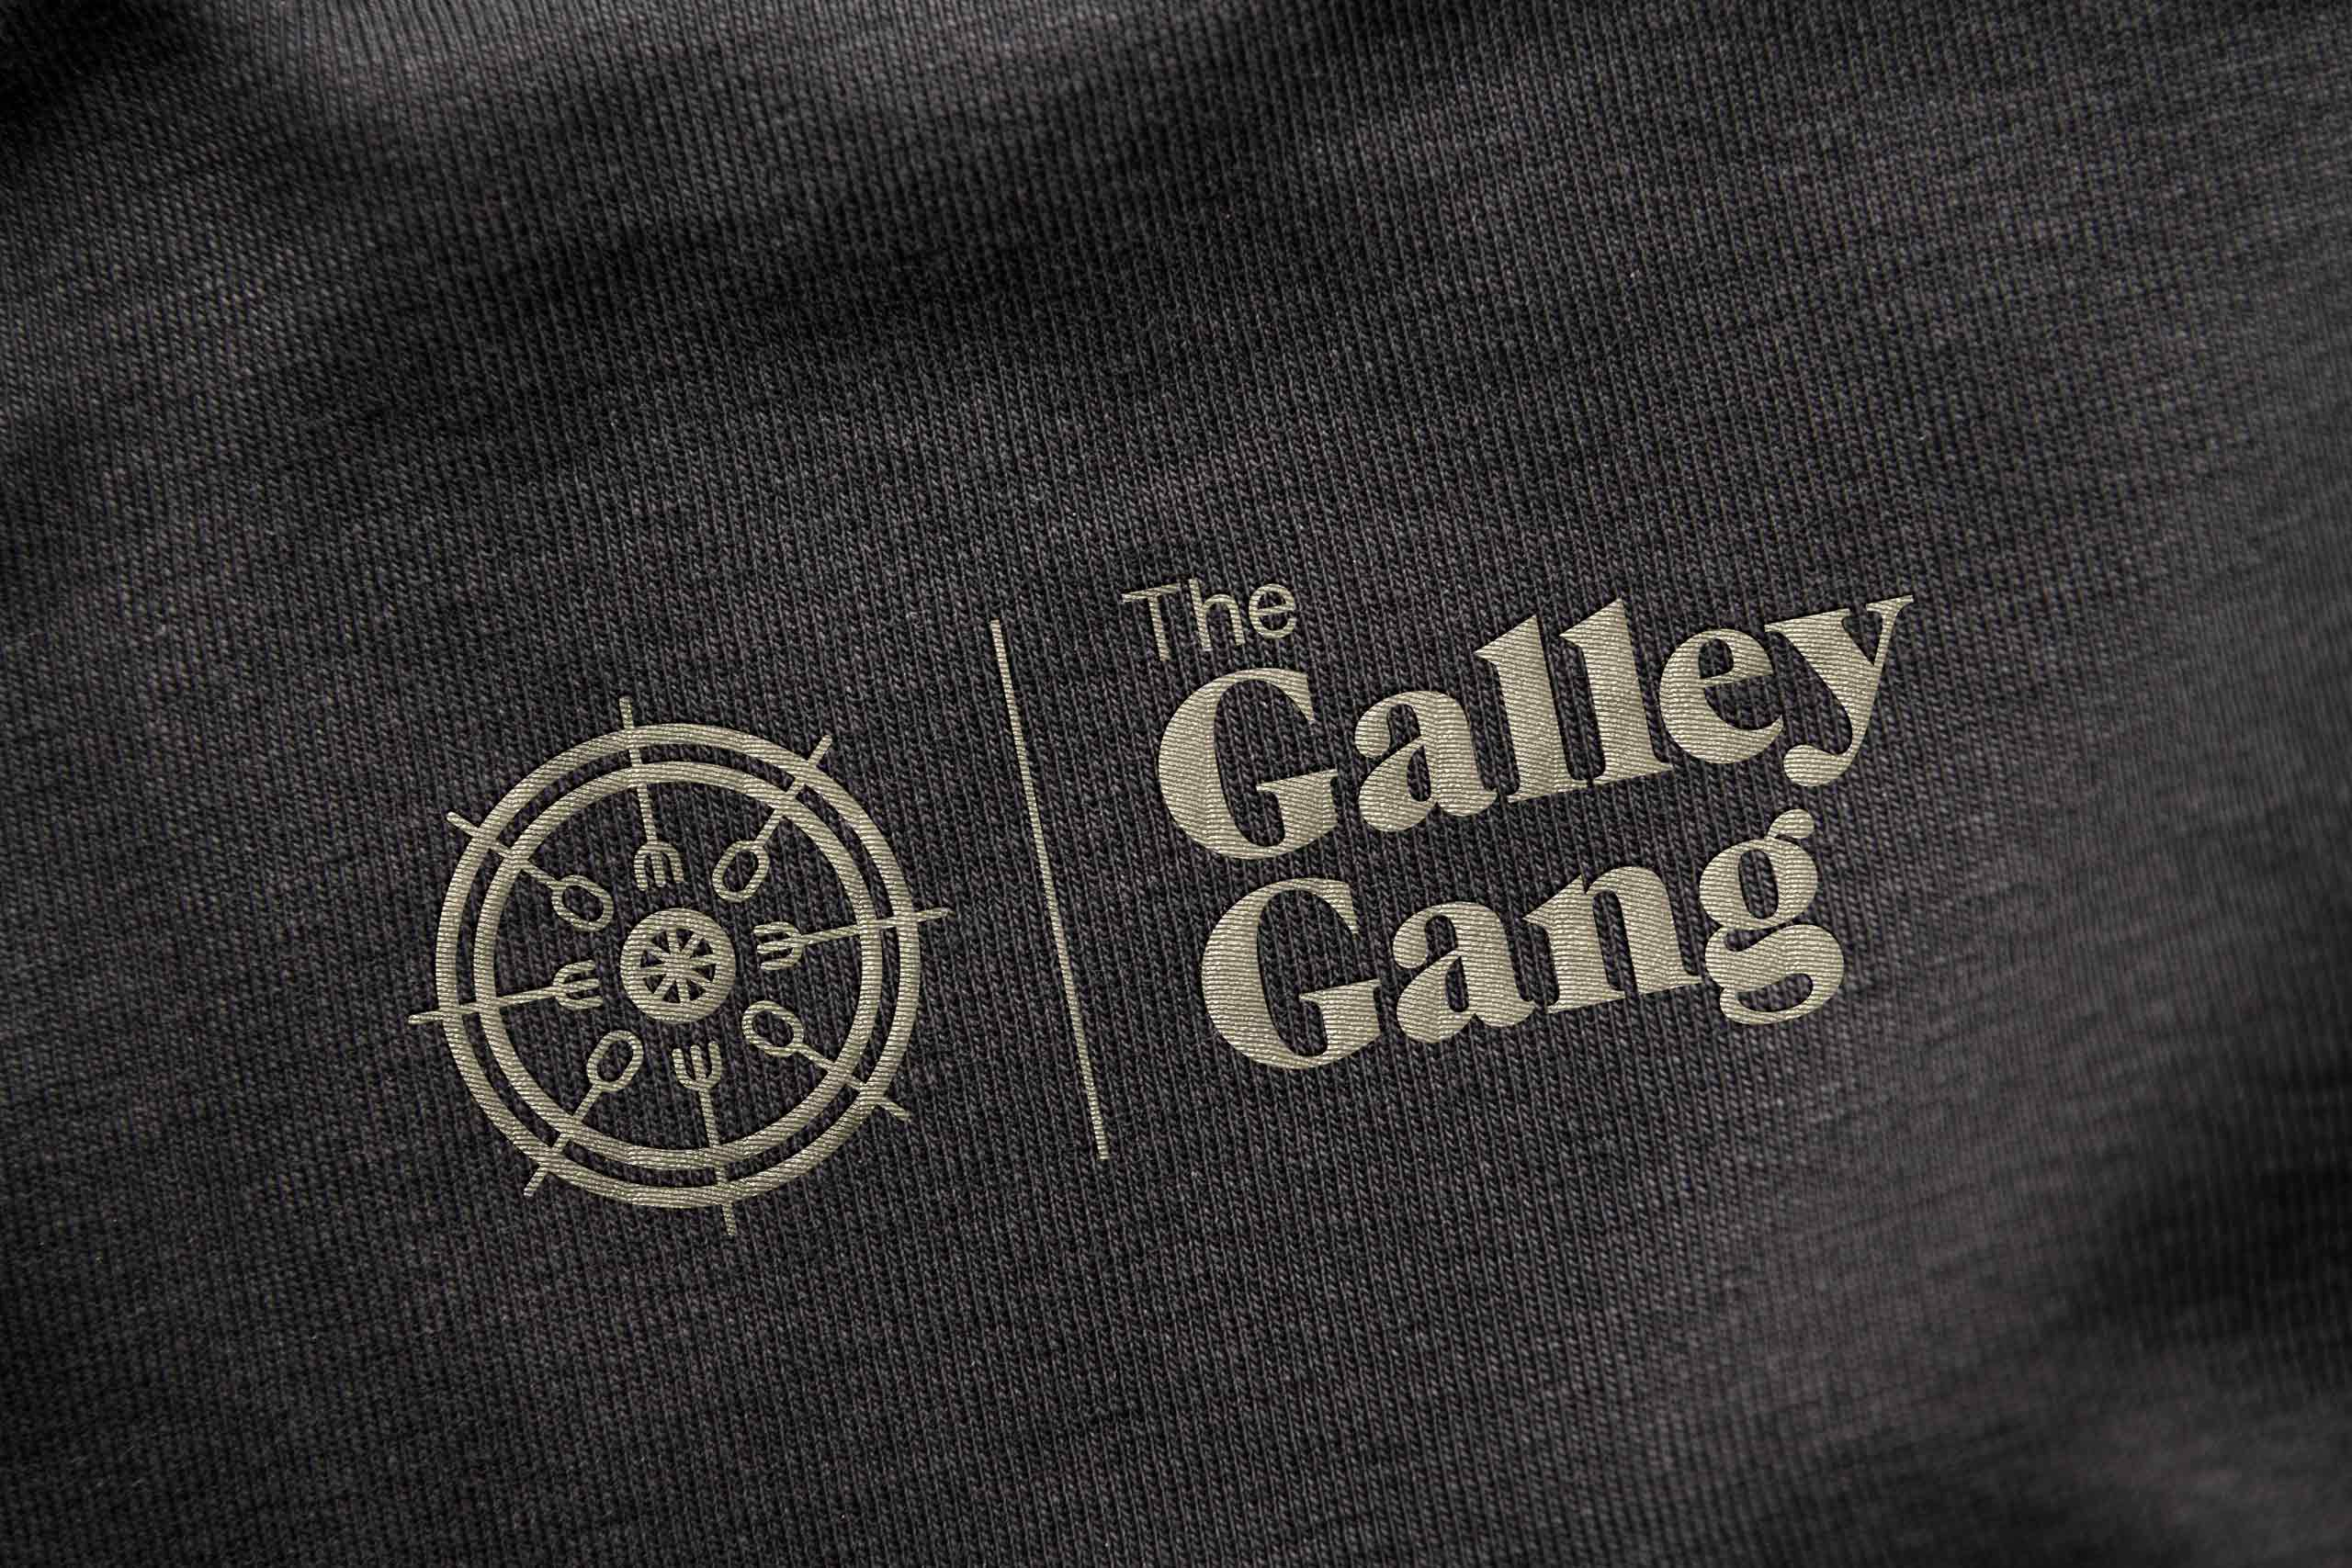 Logo design the galley gang